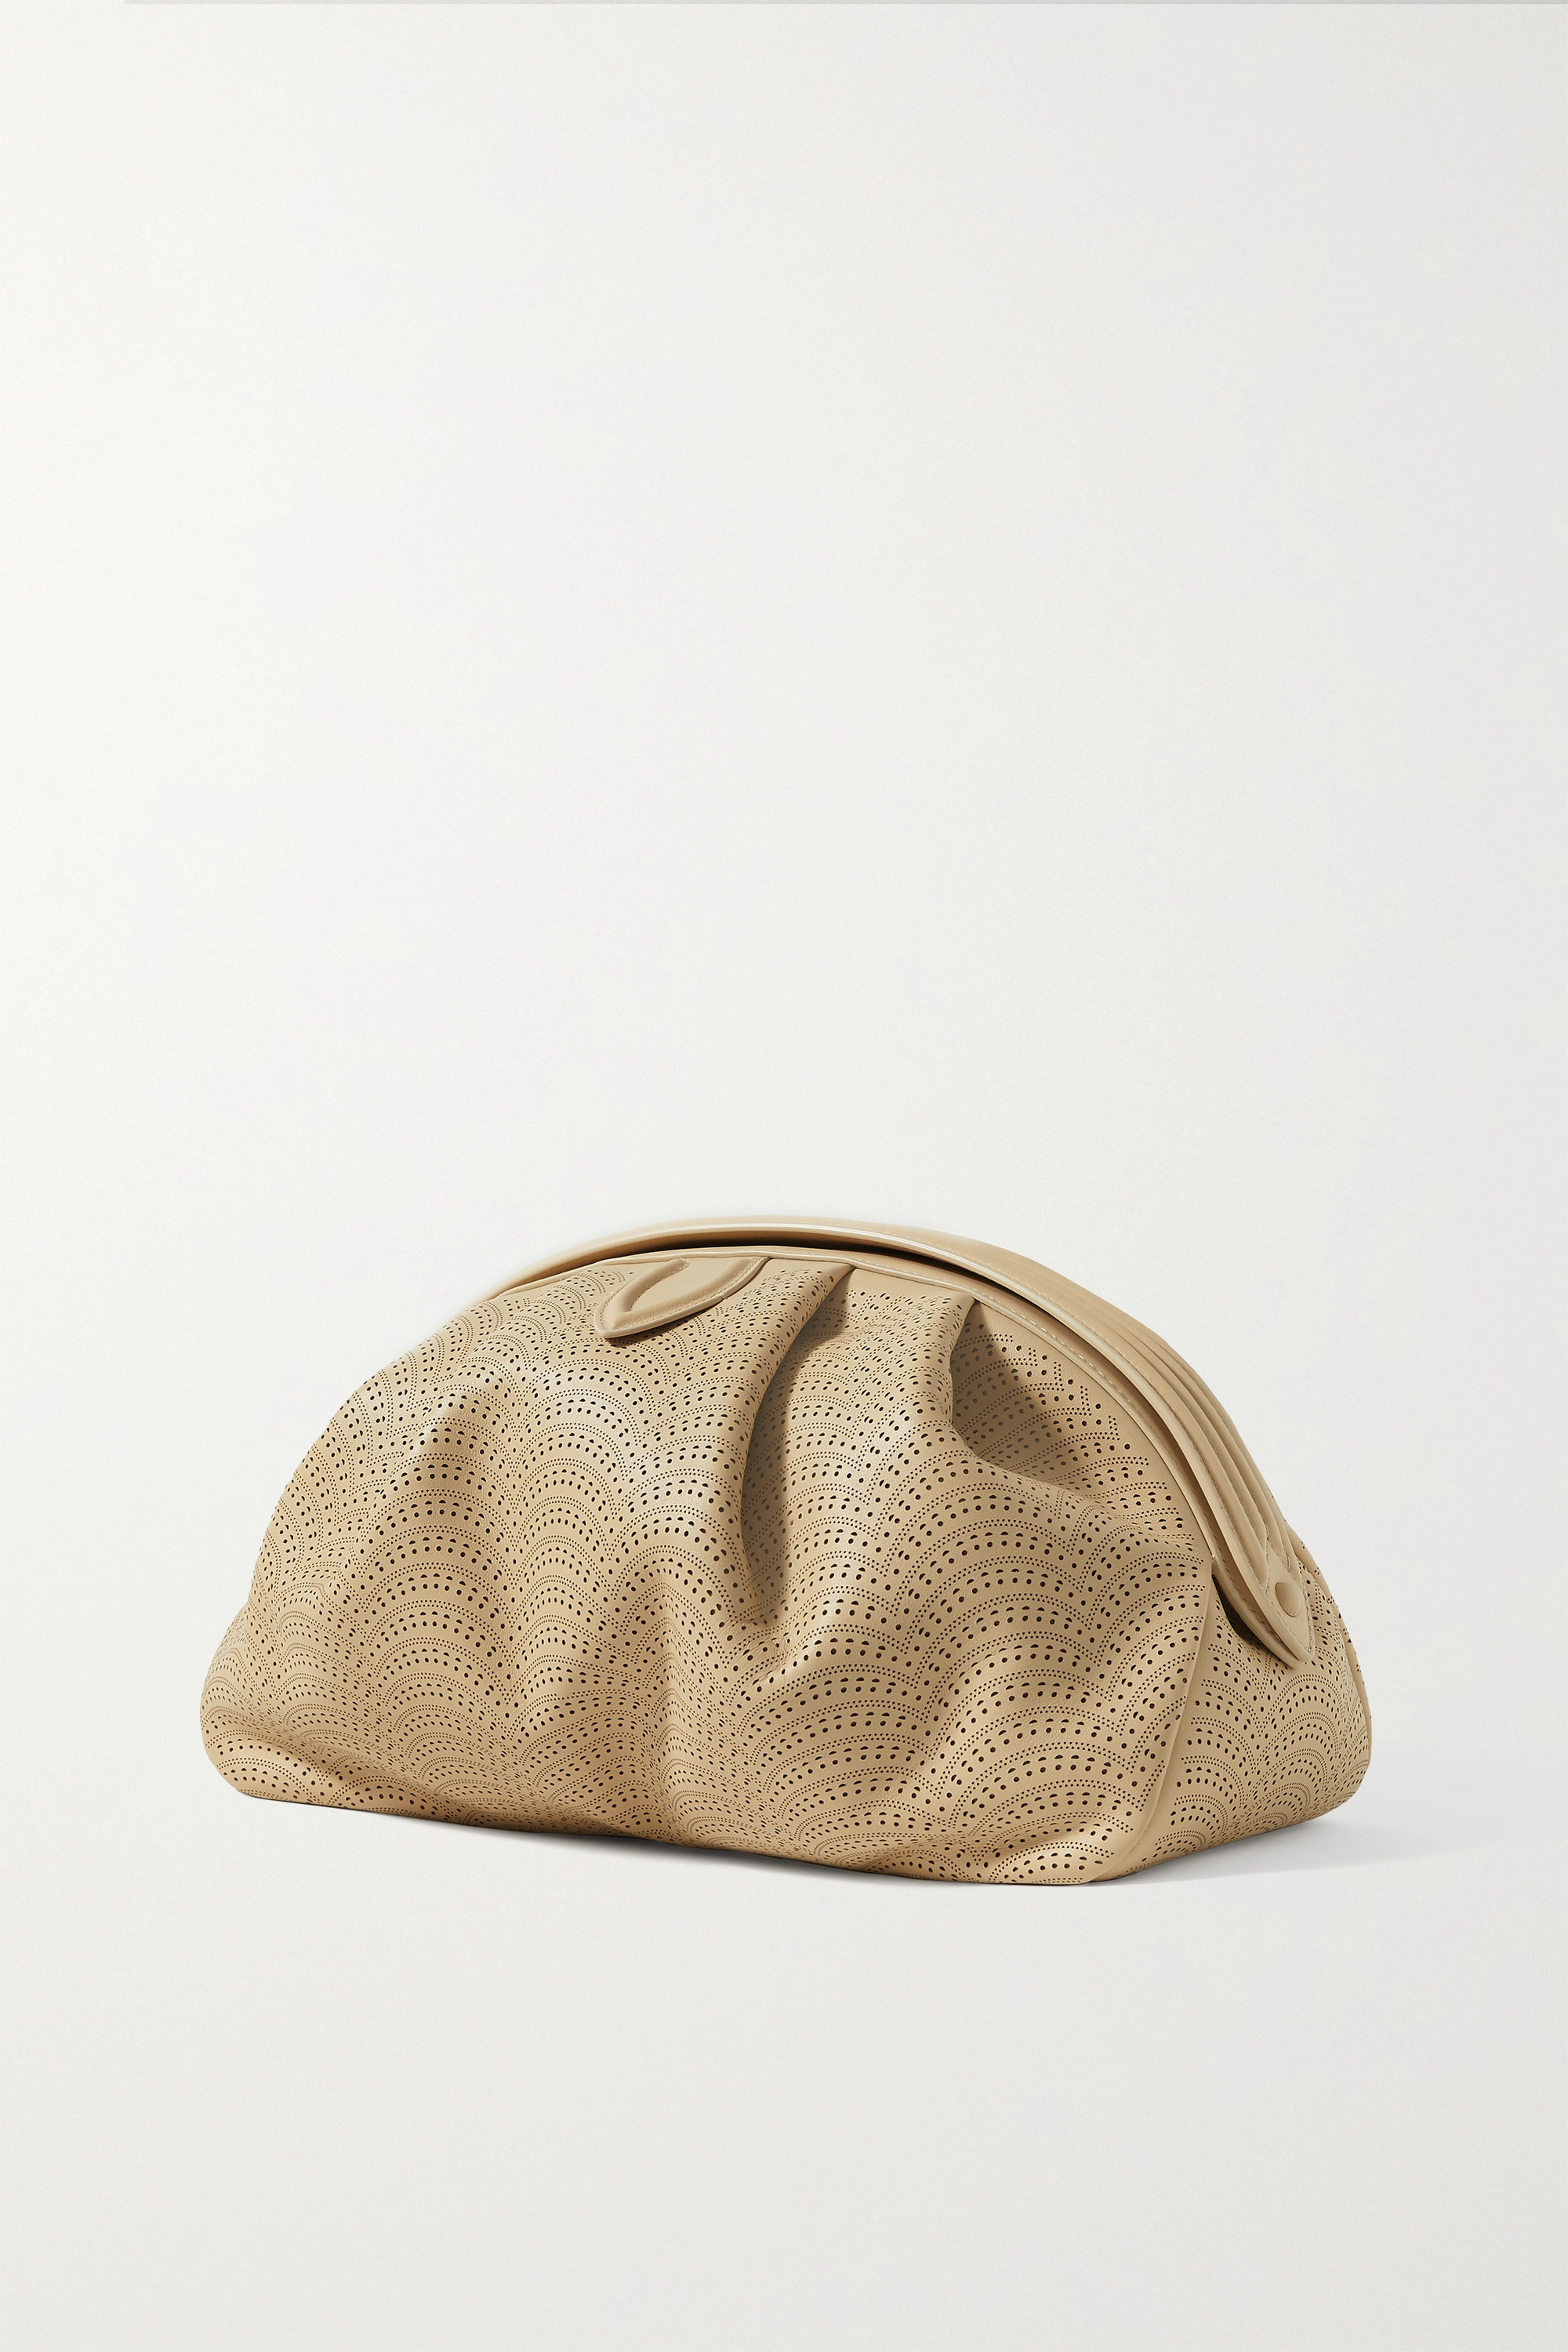 Alaïa Samia laser-cut leather clutch